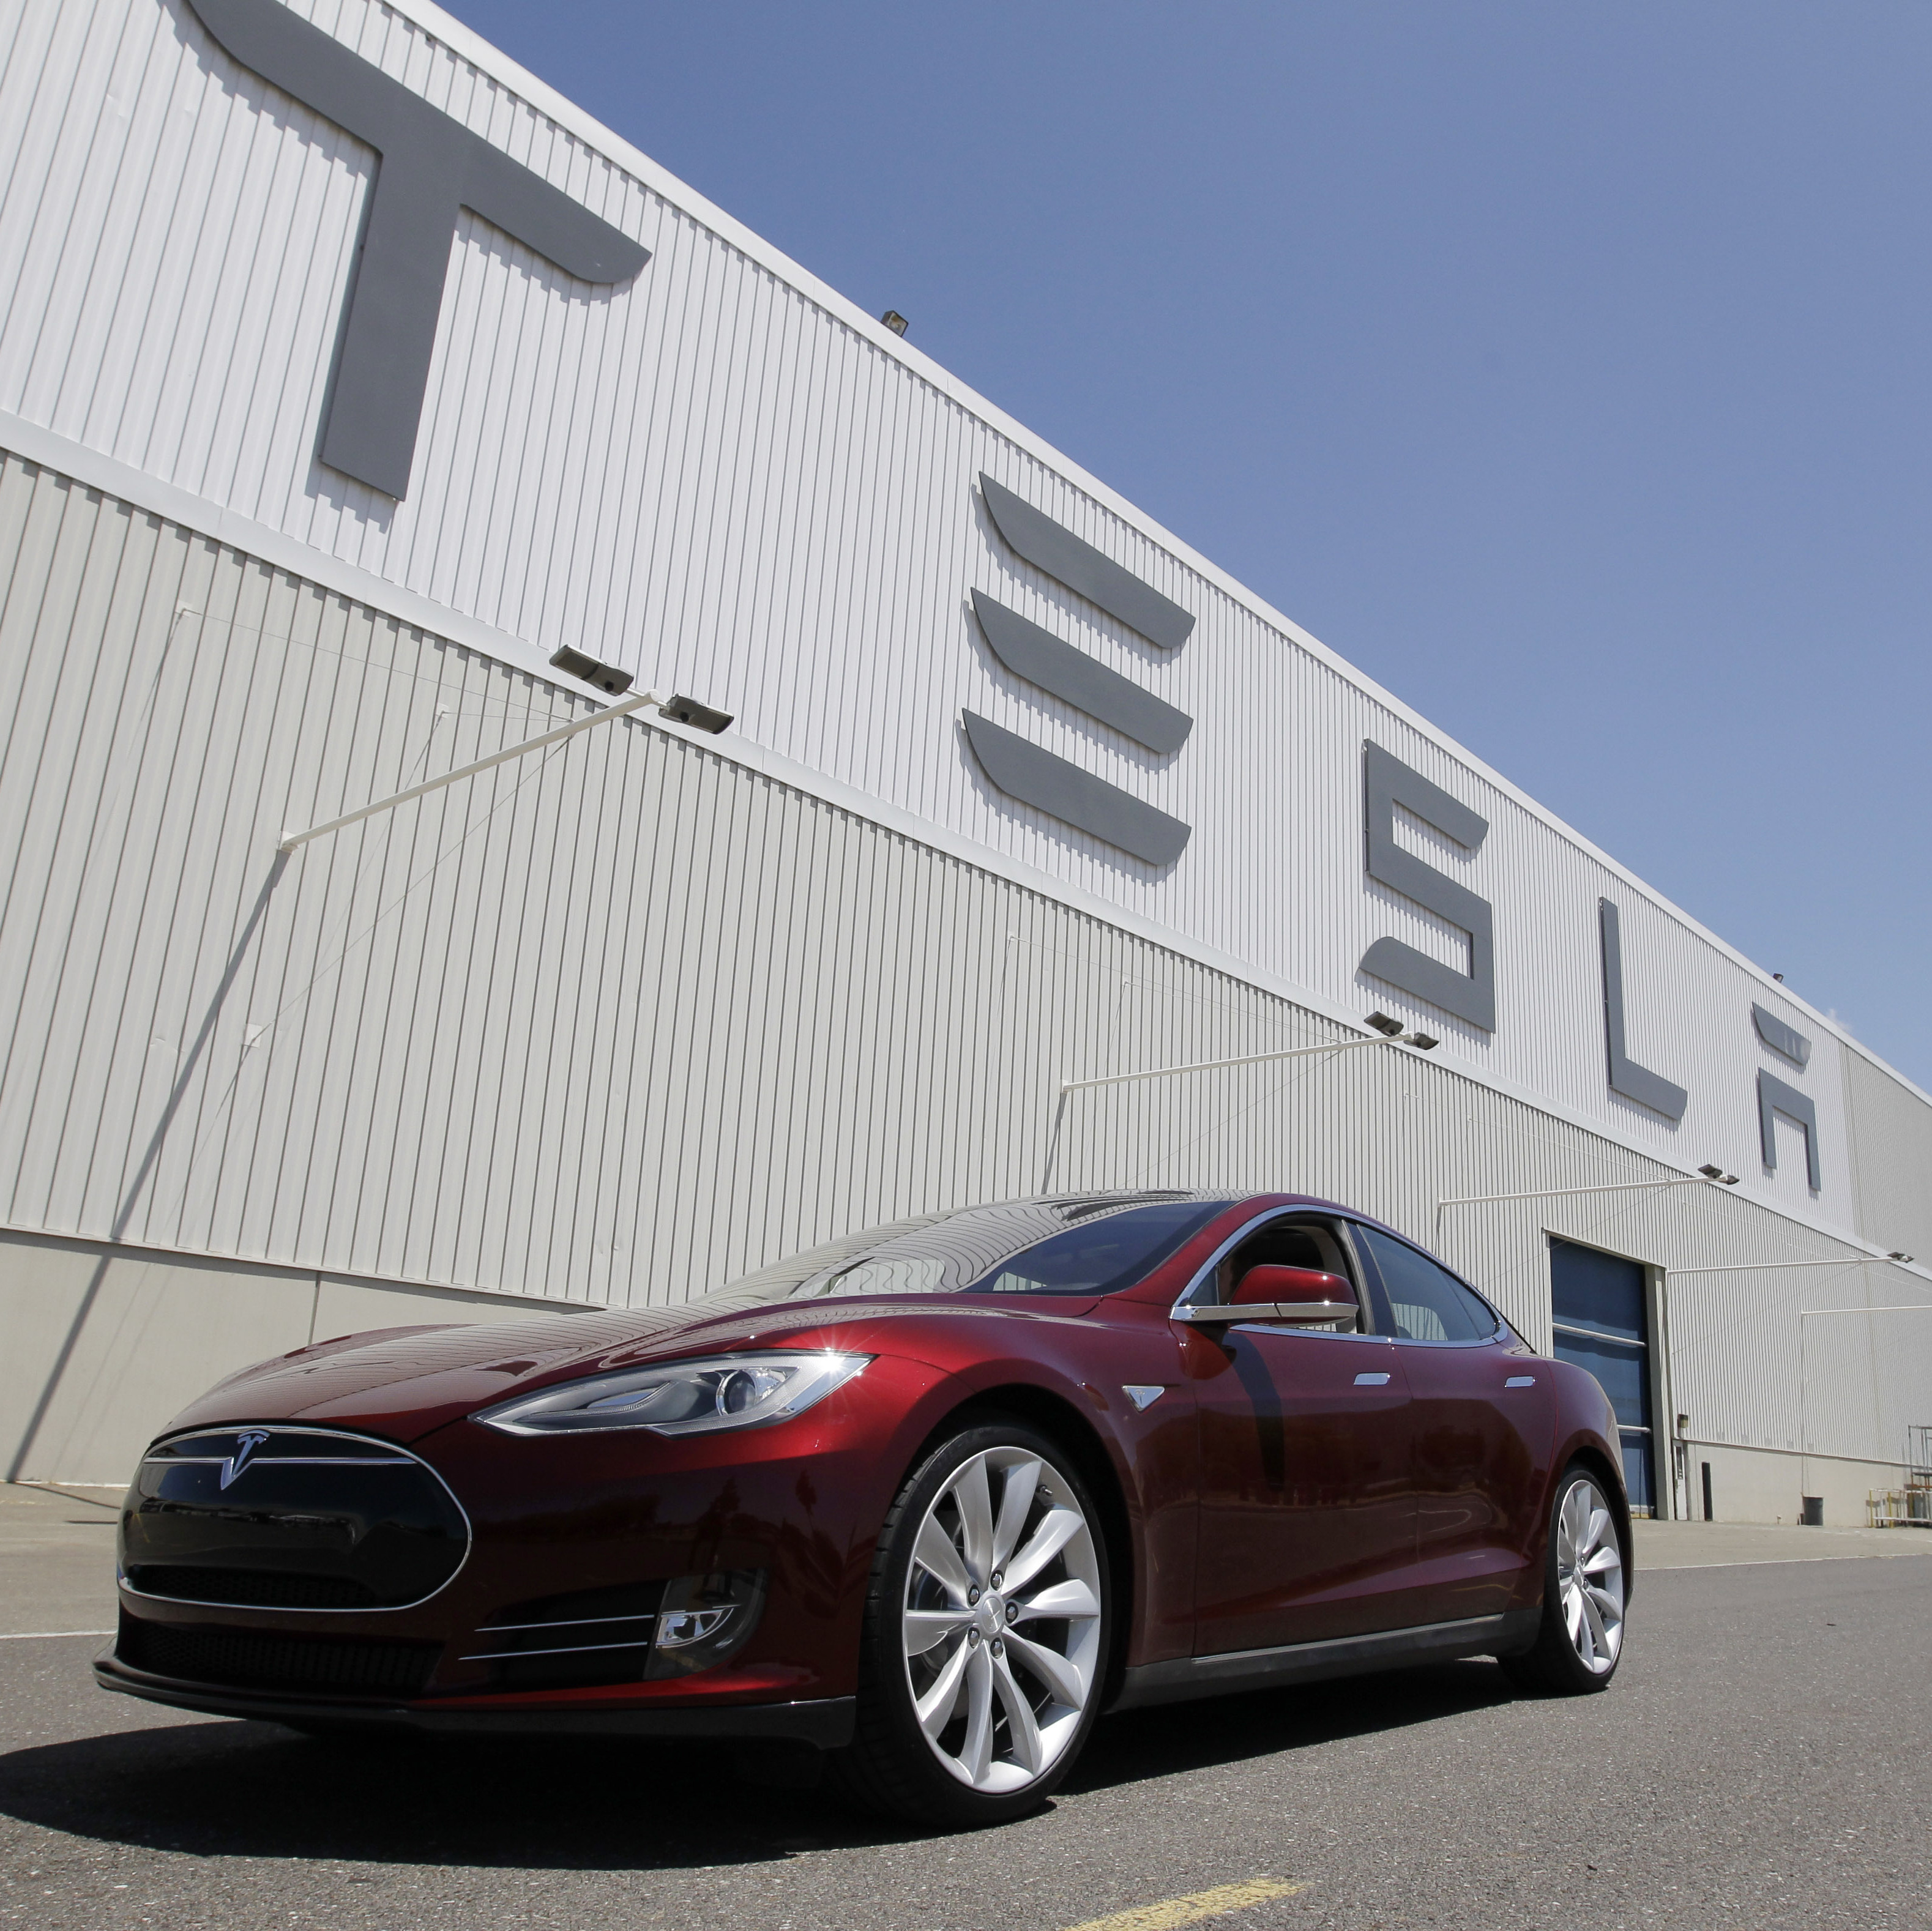 A Tesla Model S drives outside the Tesla factory in Fremont, Calif., on June 22. The electric car was recently named Automobile of the Year by Automobile Magazine and Car of the Year by Motor Trend.